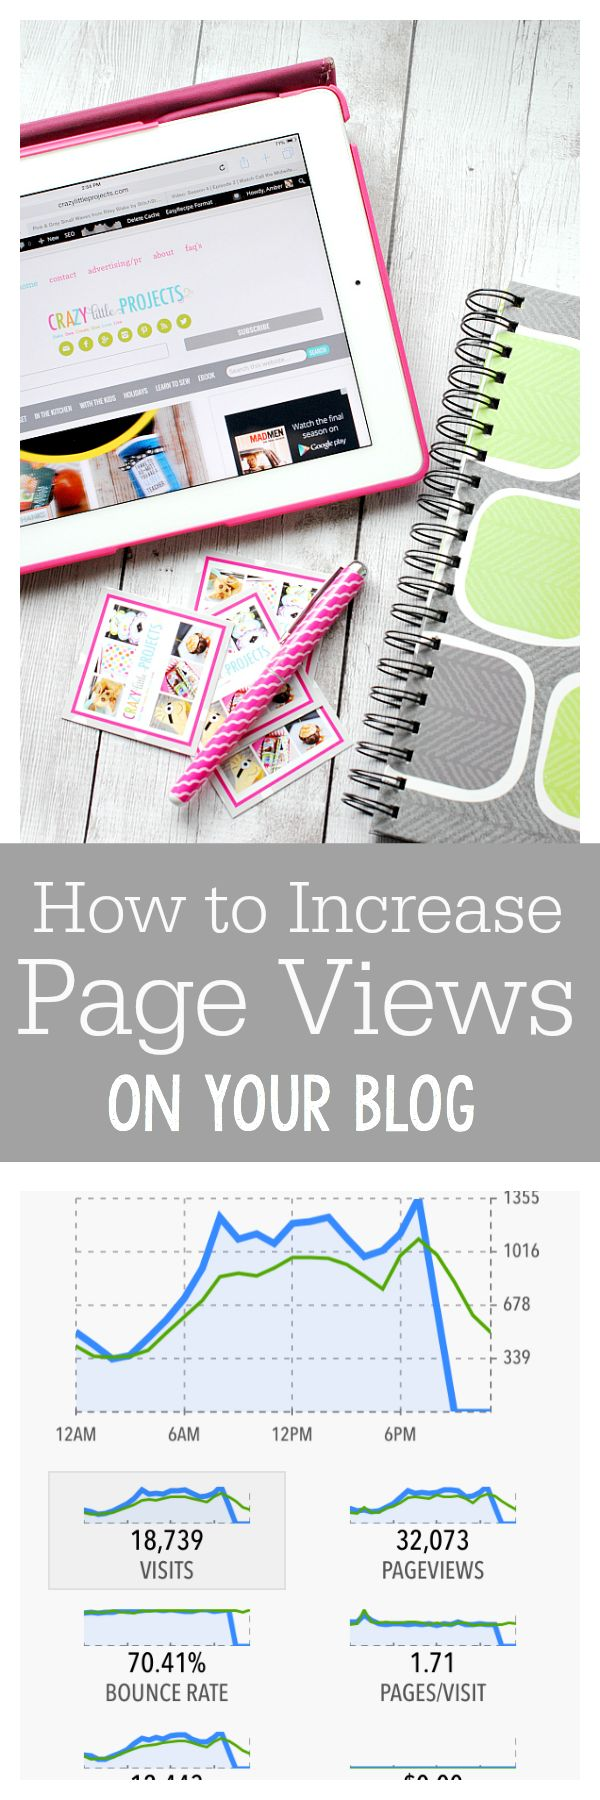 10 Easy Tips to Increasing Your Page Views on Your Blog